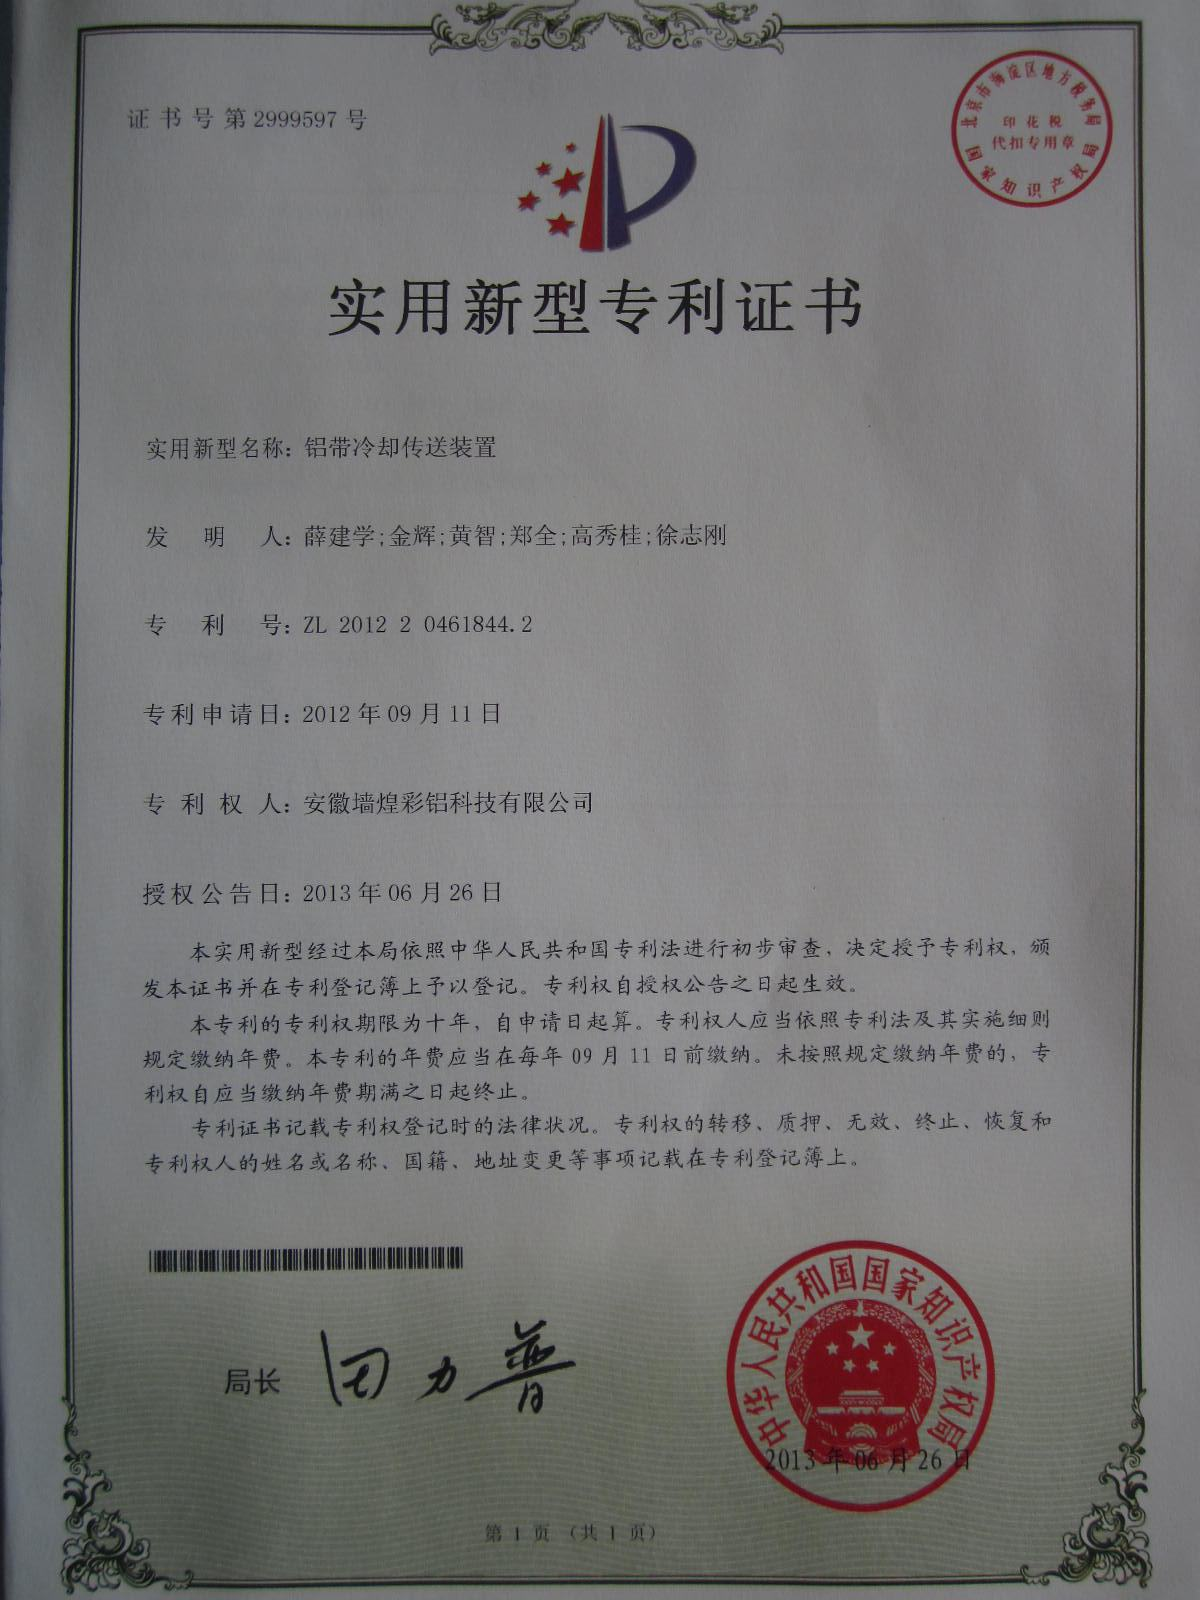 LETTER of PATENT (1)